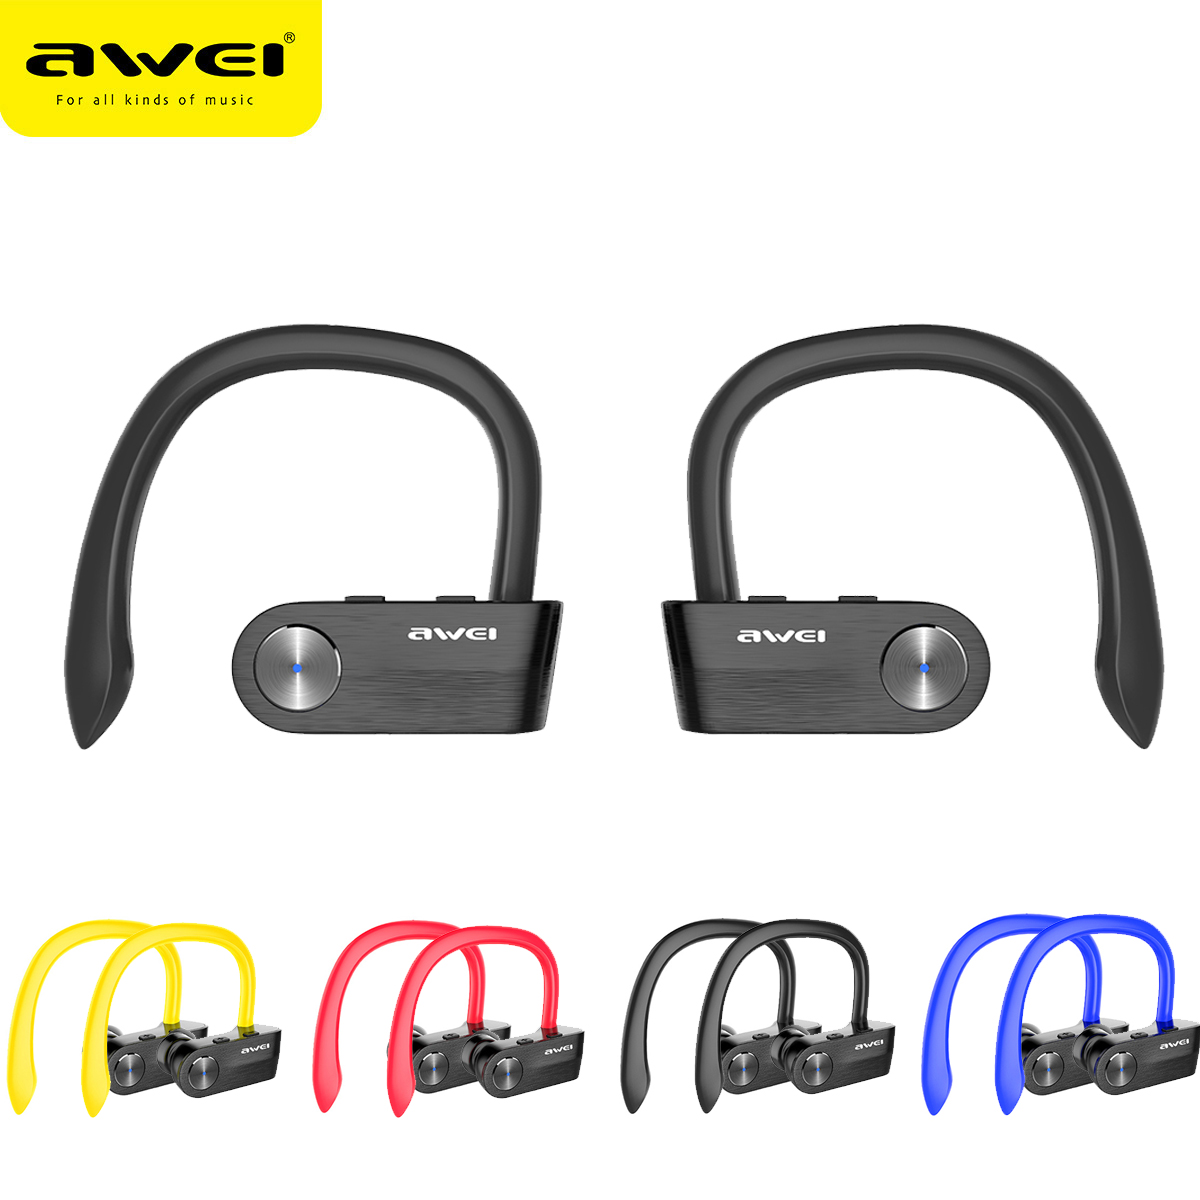 AWEI T2 Wireless Bluetooth Earphone TWS Stereo V4.2 Headset Cordless Ecouteur For Phone Auriculares With Microphone Bluetooth best price mini bluetooth headphones for mobile phone wireless earpiece earphone cordless stereo headset microphone feb8